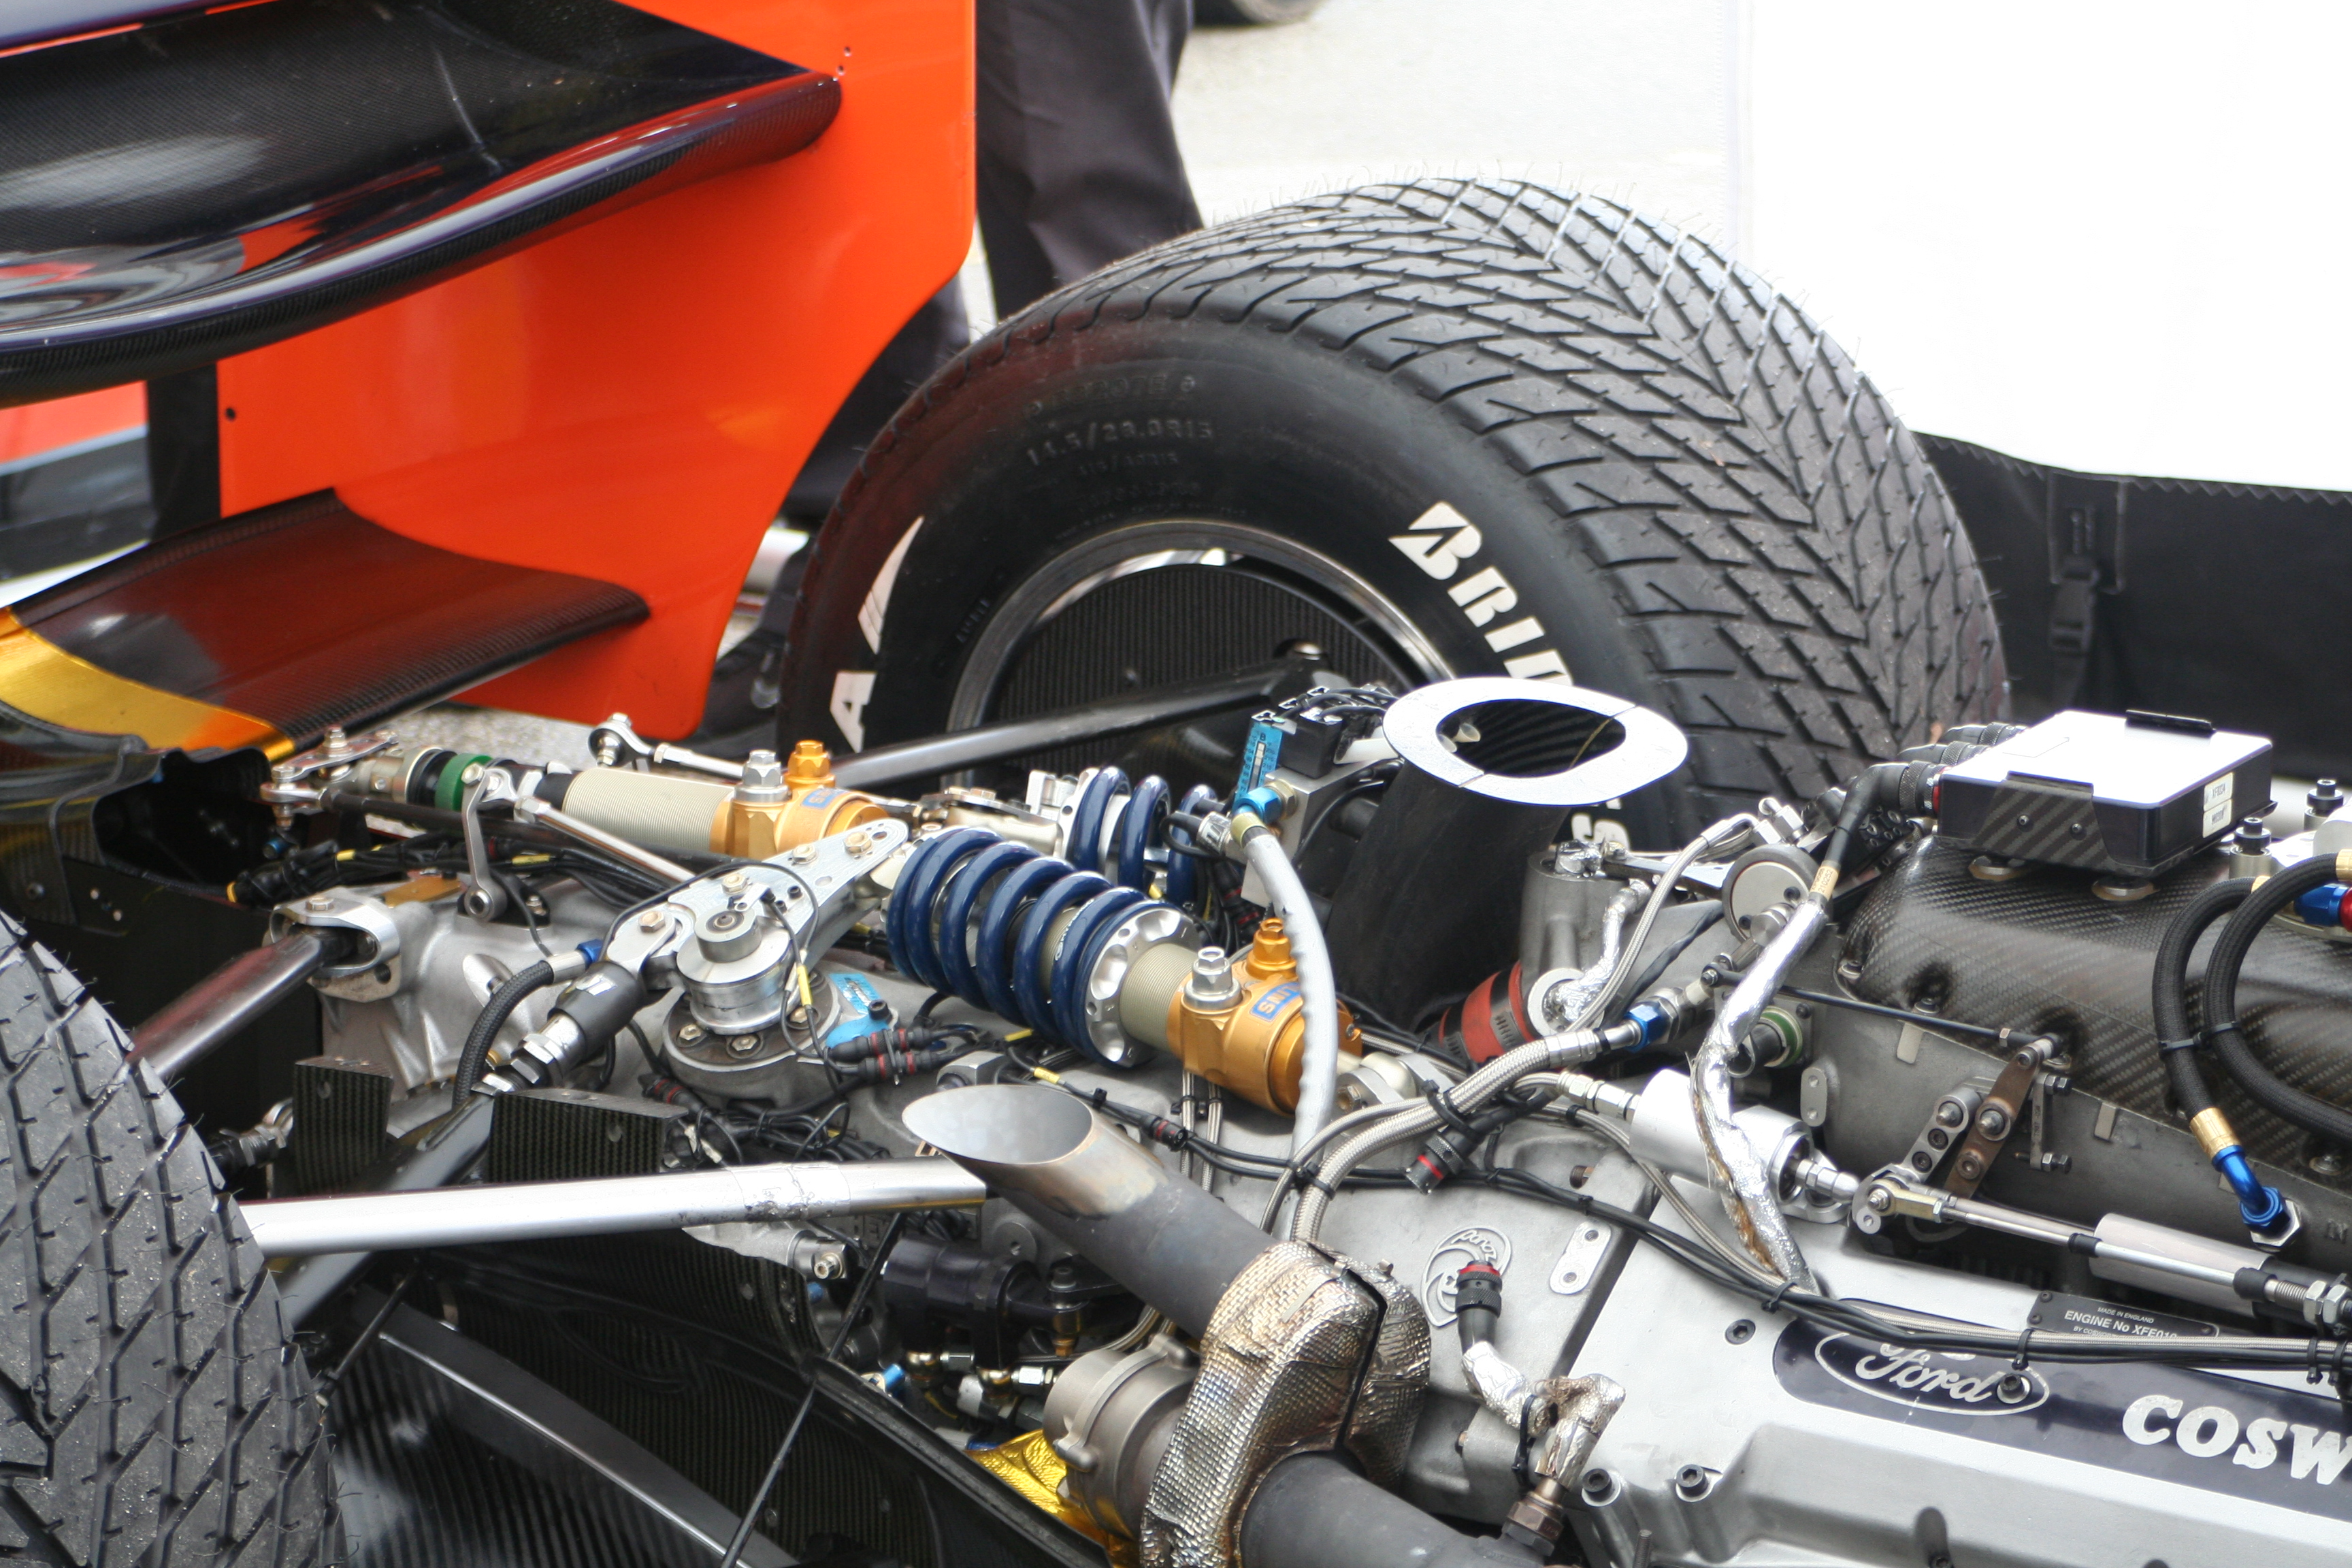 File:Panoz DP01, Cosworth engine.jpg - Wikimedia Commons